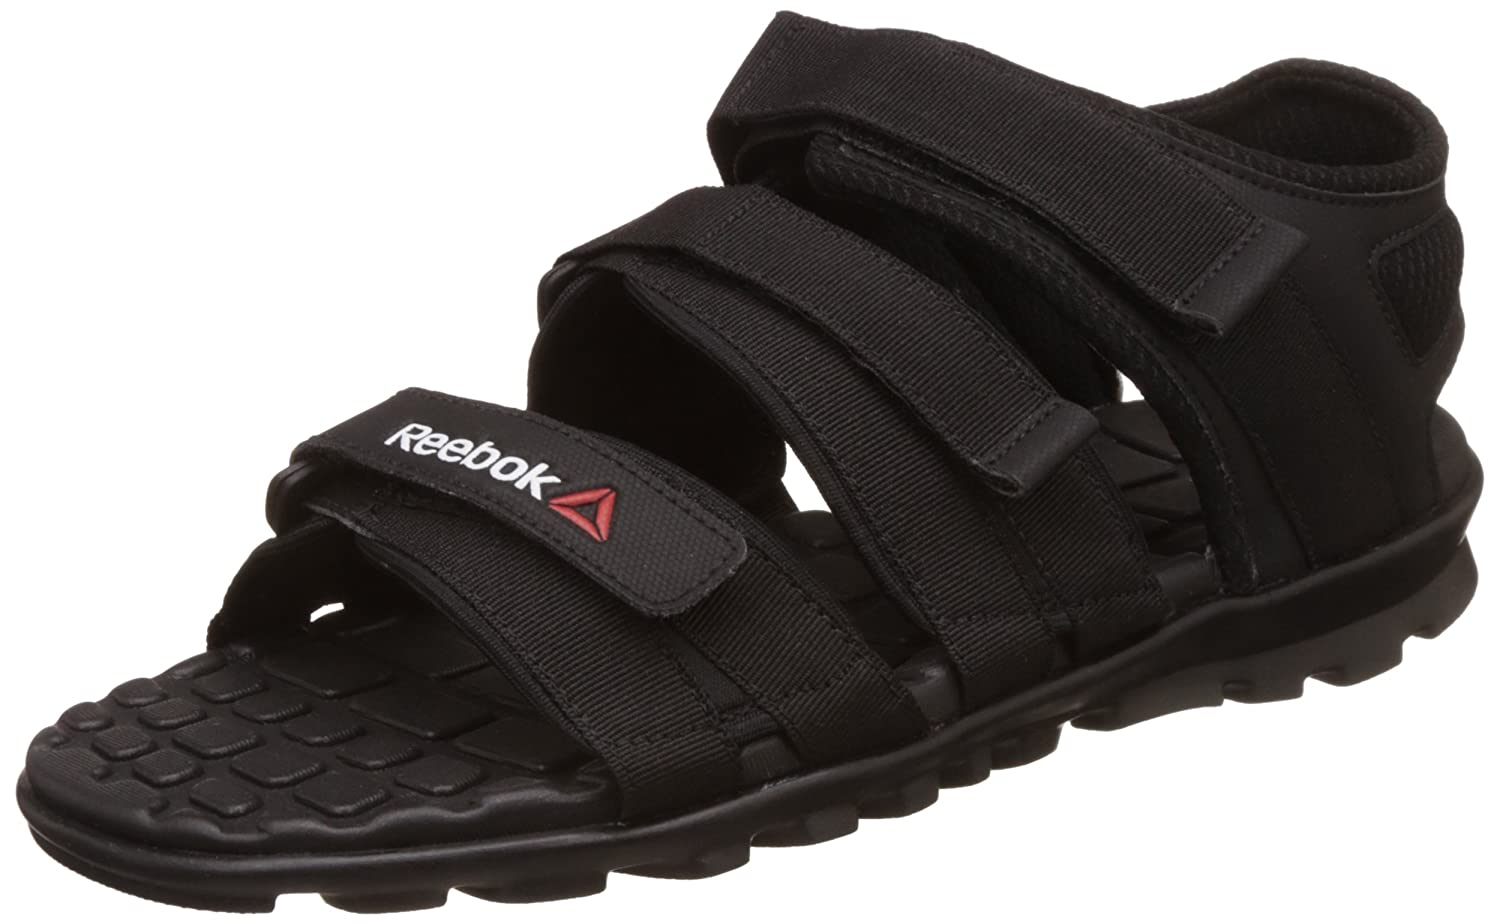 3528ae9e43d Reebok Men s Chrome Flex 2.0 Sandals and Floaters  Buy Online at Low Prices  in India - Amazon.in